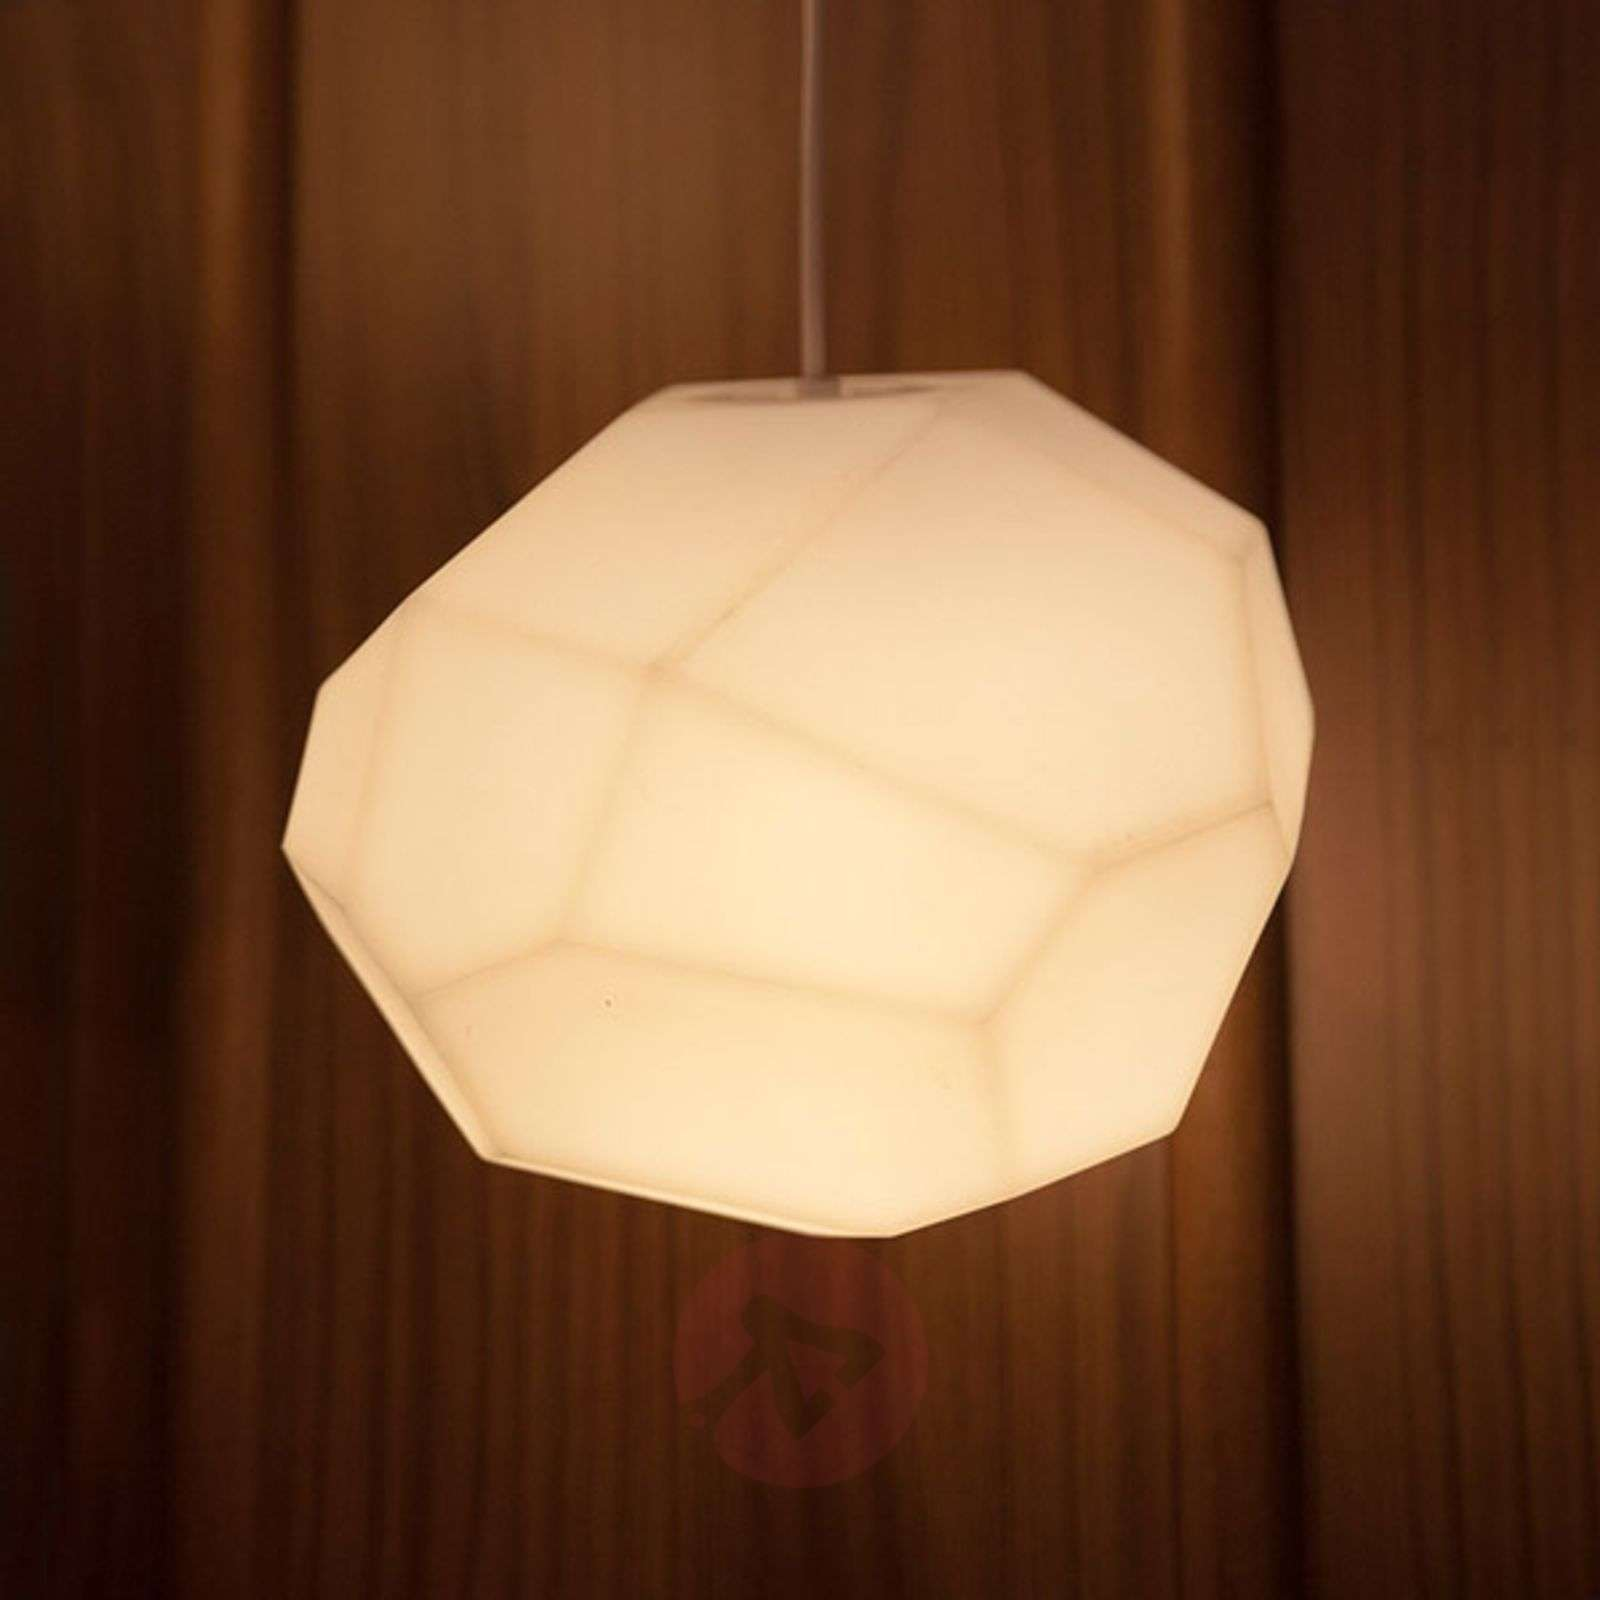 Innermost Asteroid suspension synthétique-5035062-01